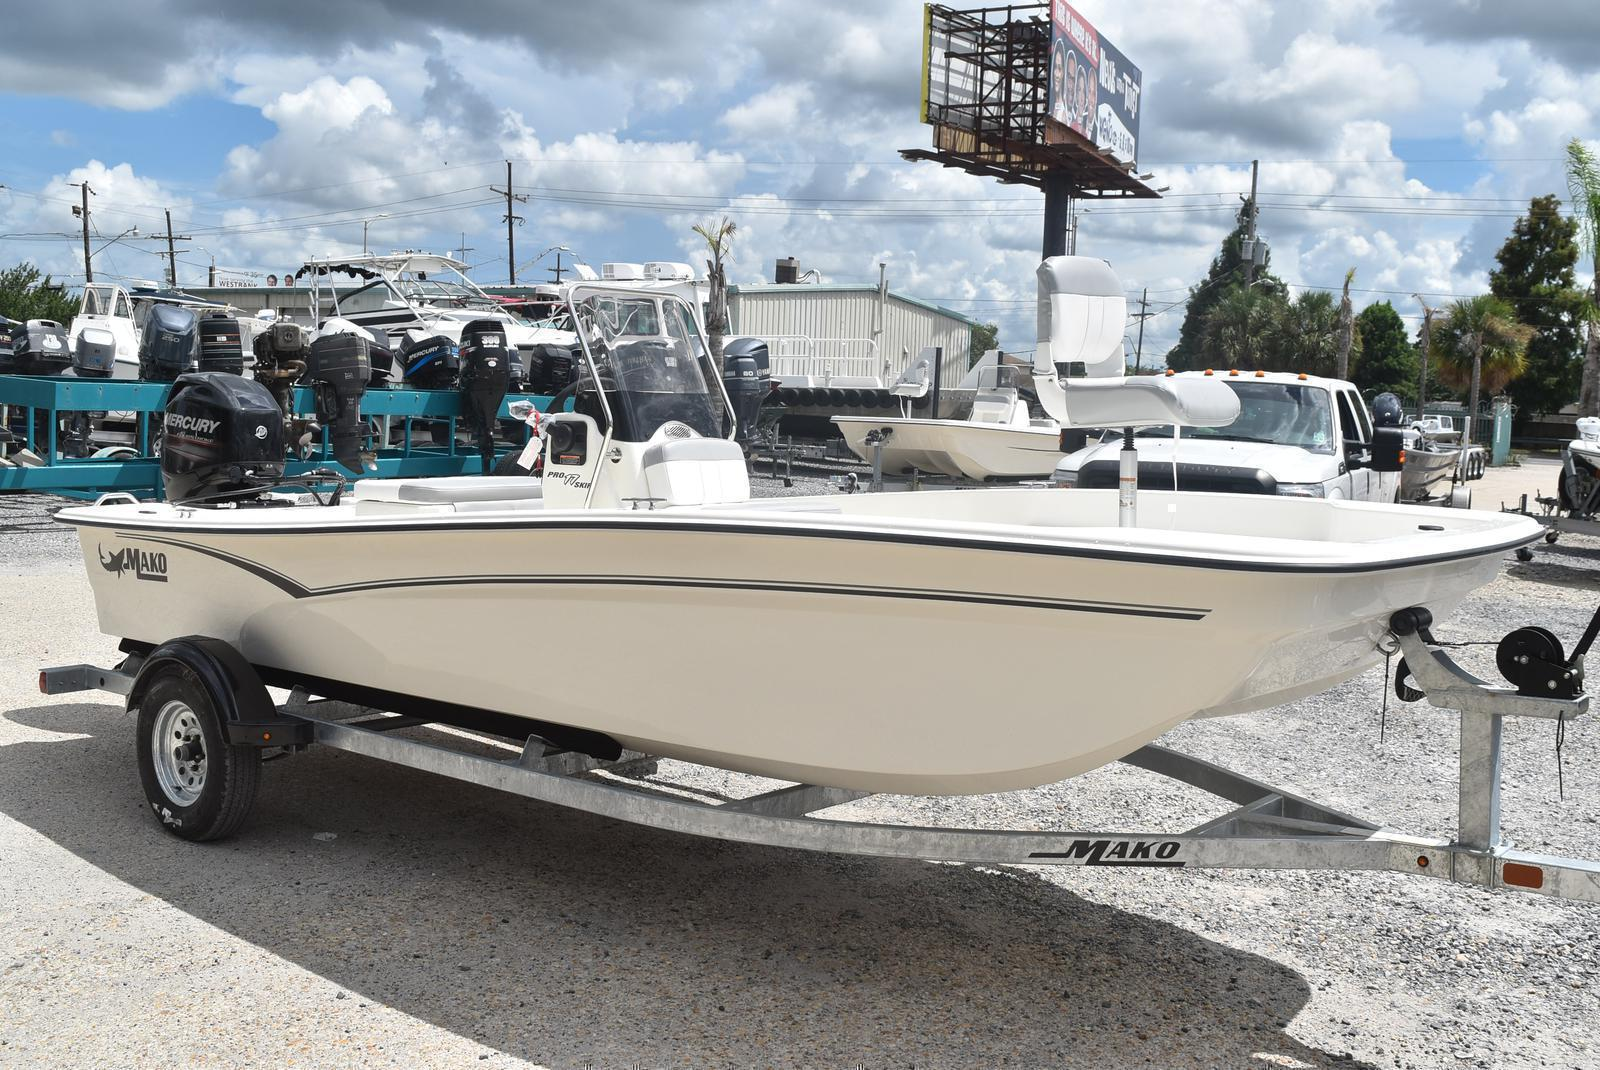 2020 Mako boat for sale, model of the boat is Pro Skiff 17, 75 ELPT & Image # 676 of 702